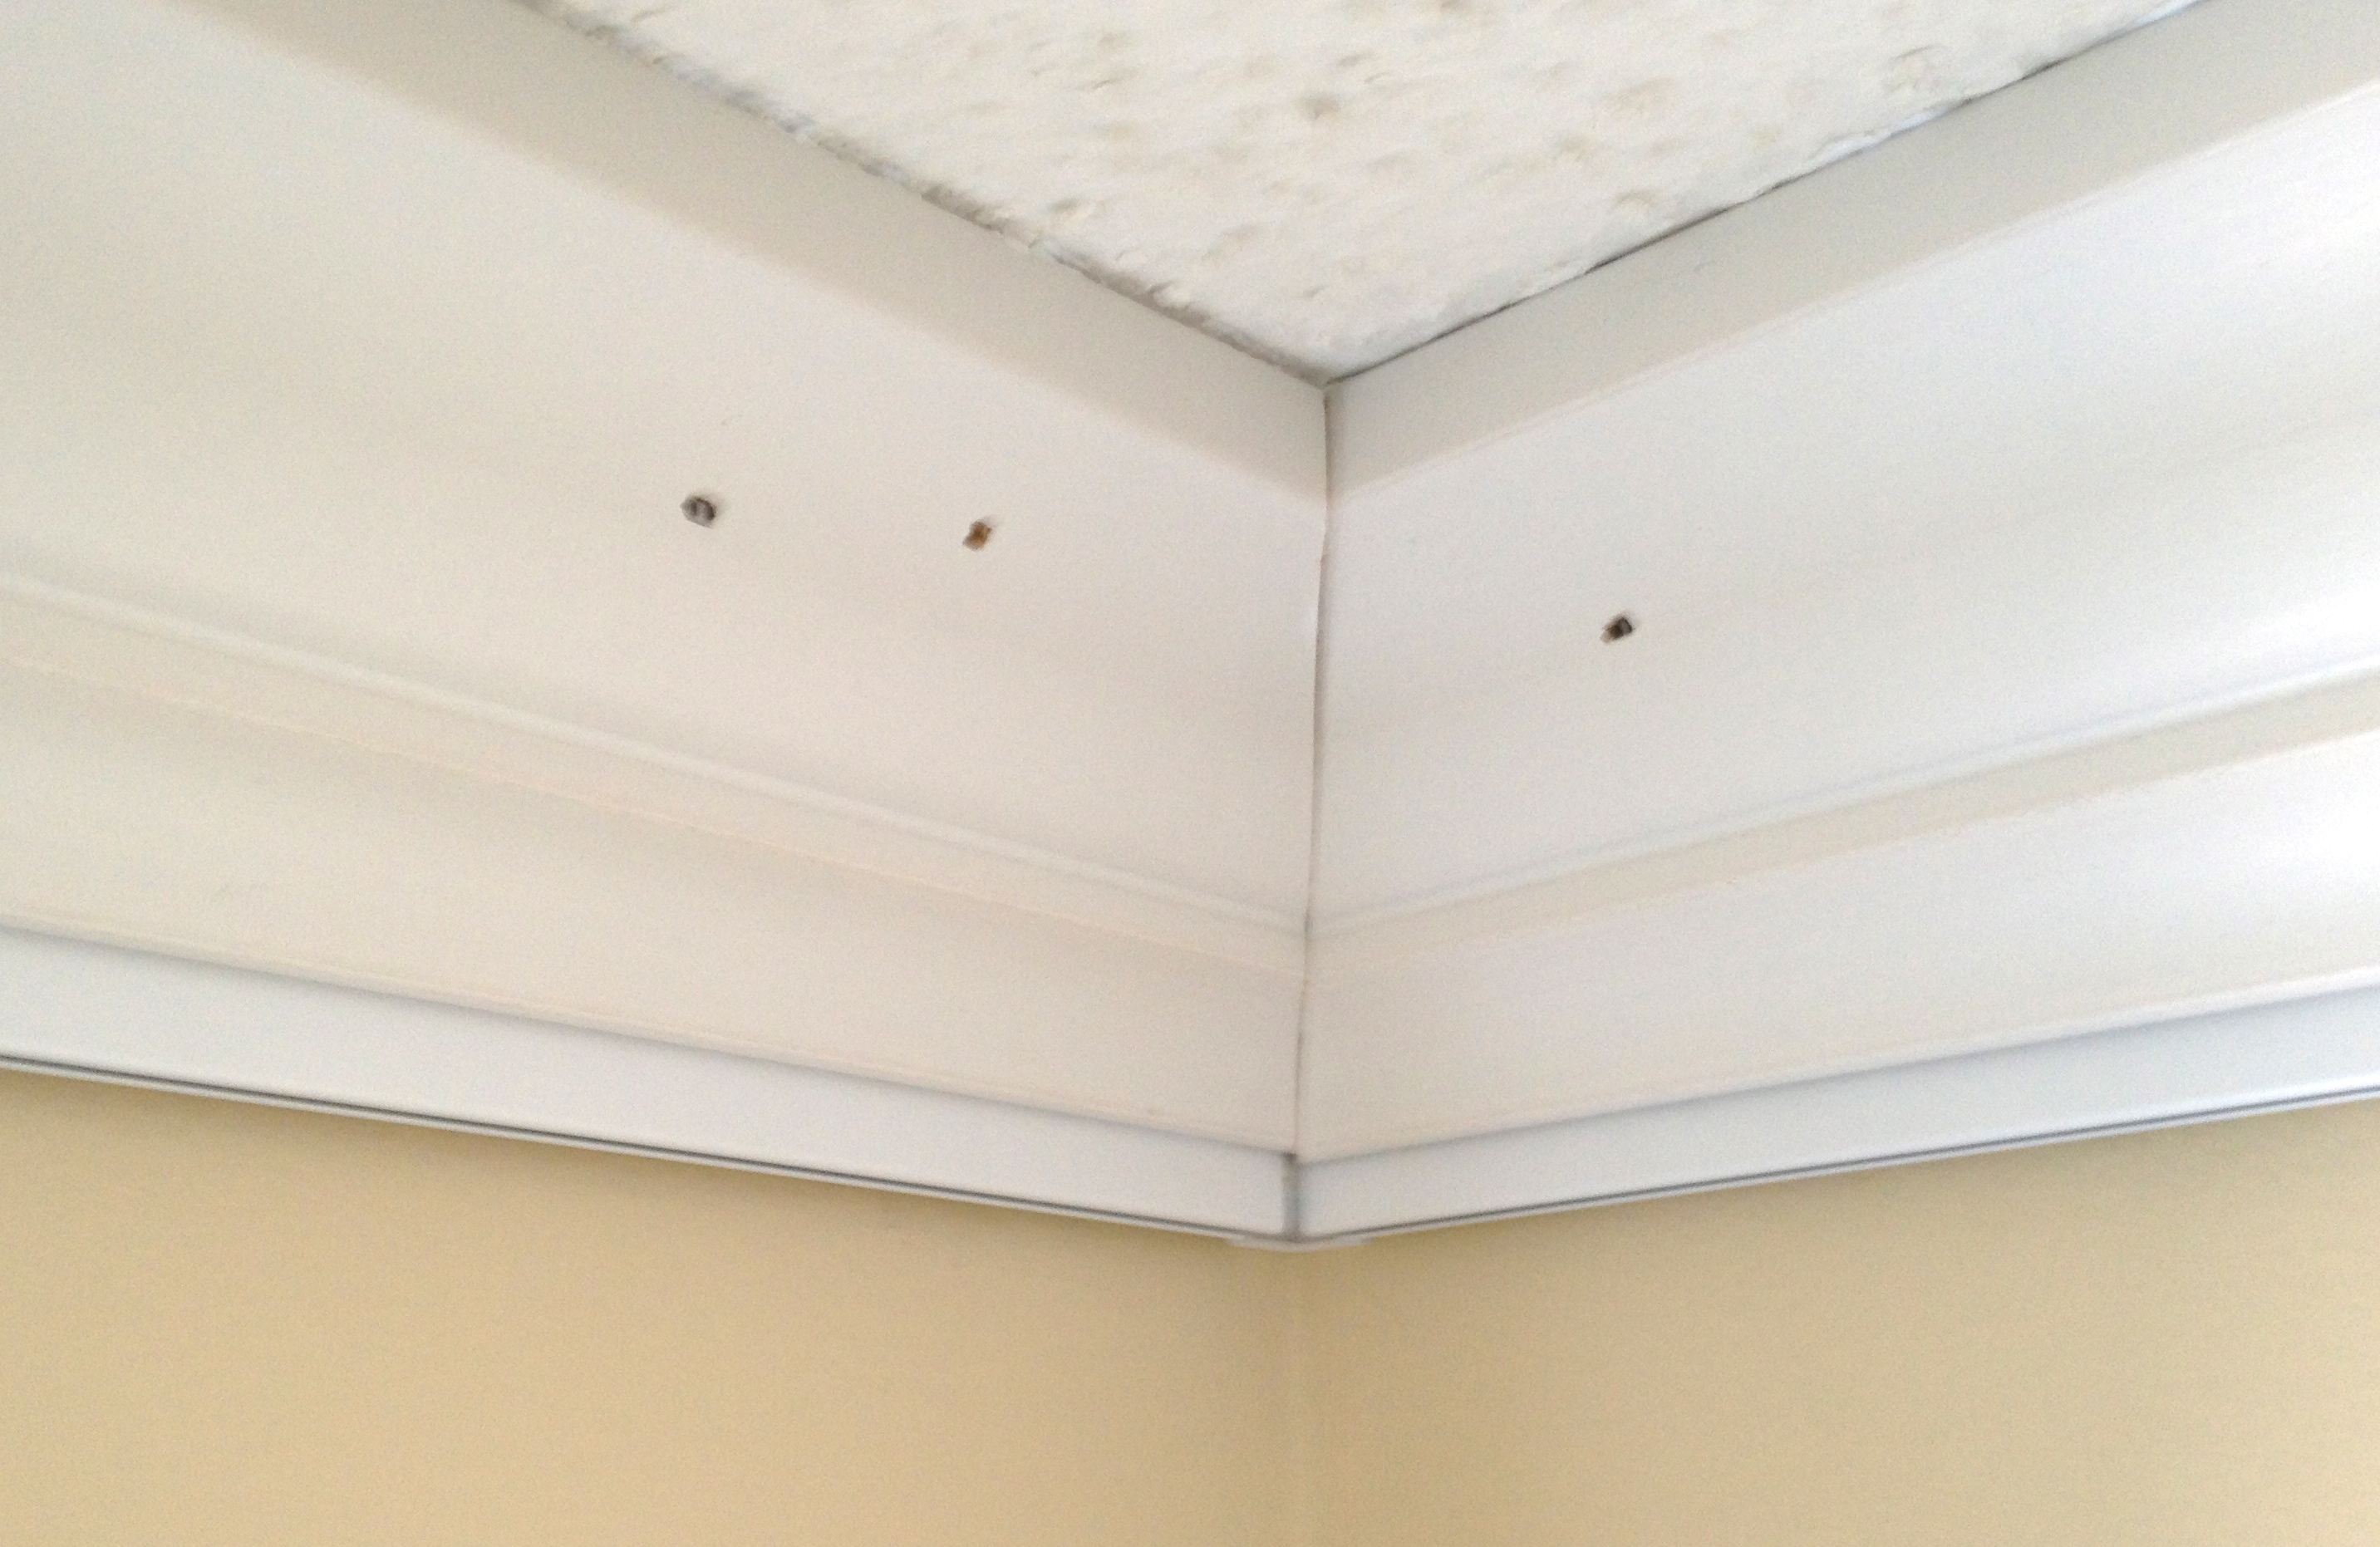 Caulk holes and seams between crown molding and Click Rail Track by AS Hanging Systems to prevent cracking.